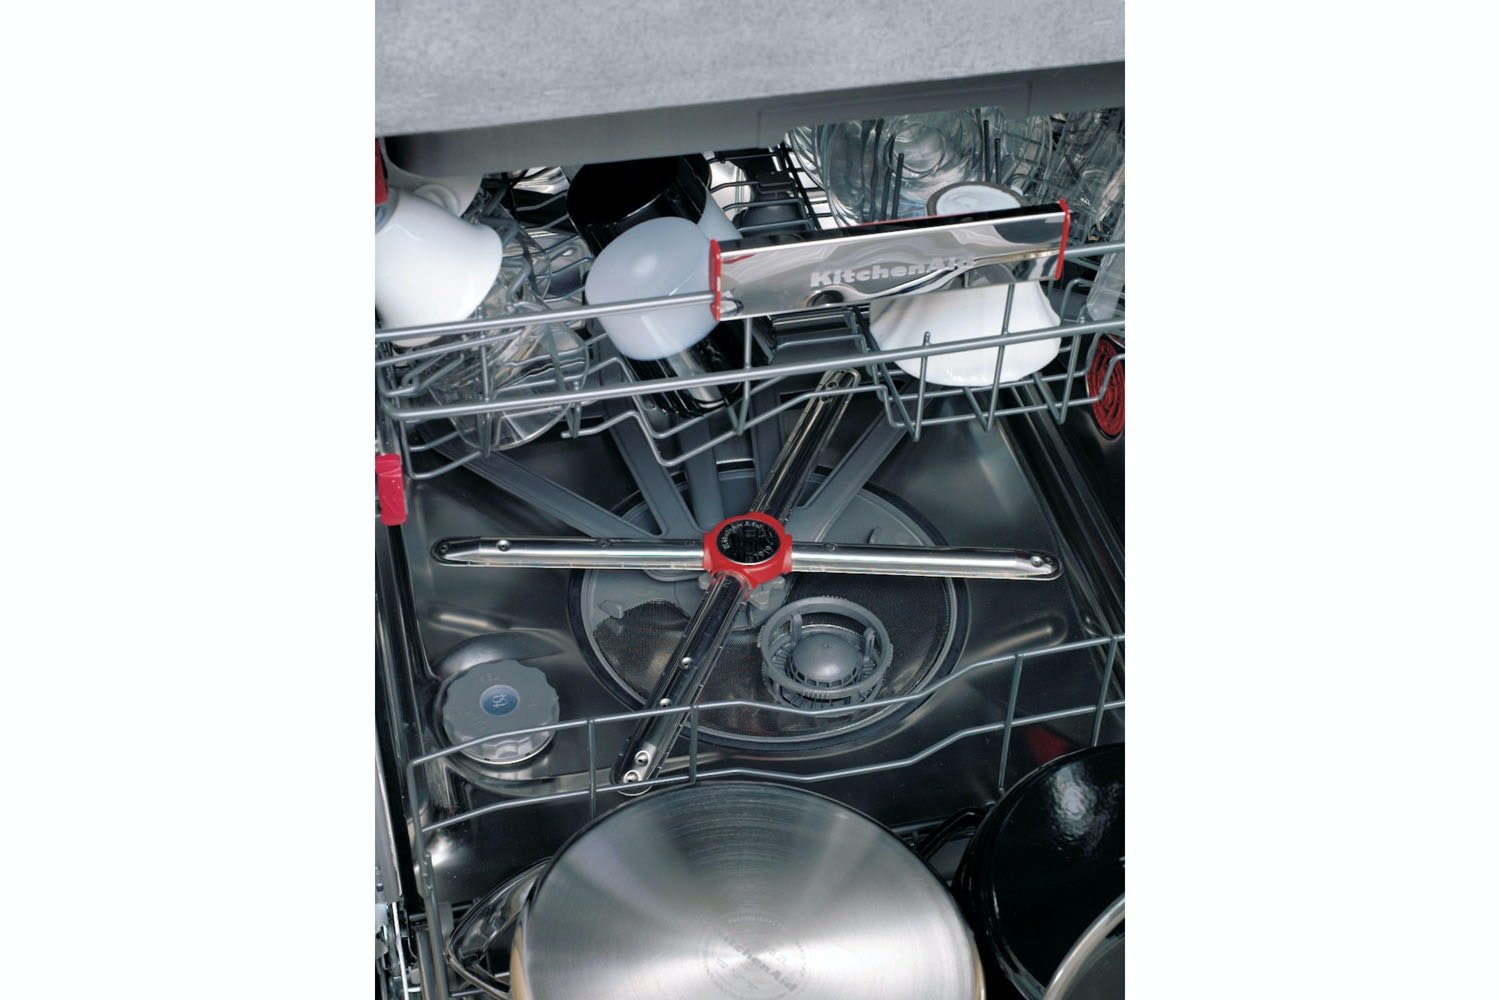 KitchenAid Fully Integrated Dishwasher | 14 Place | KDSCM82140